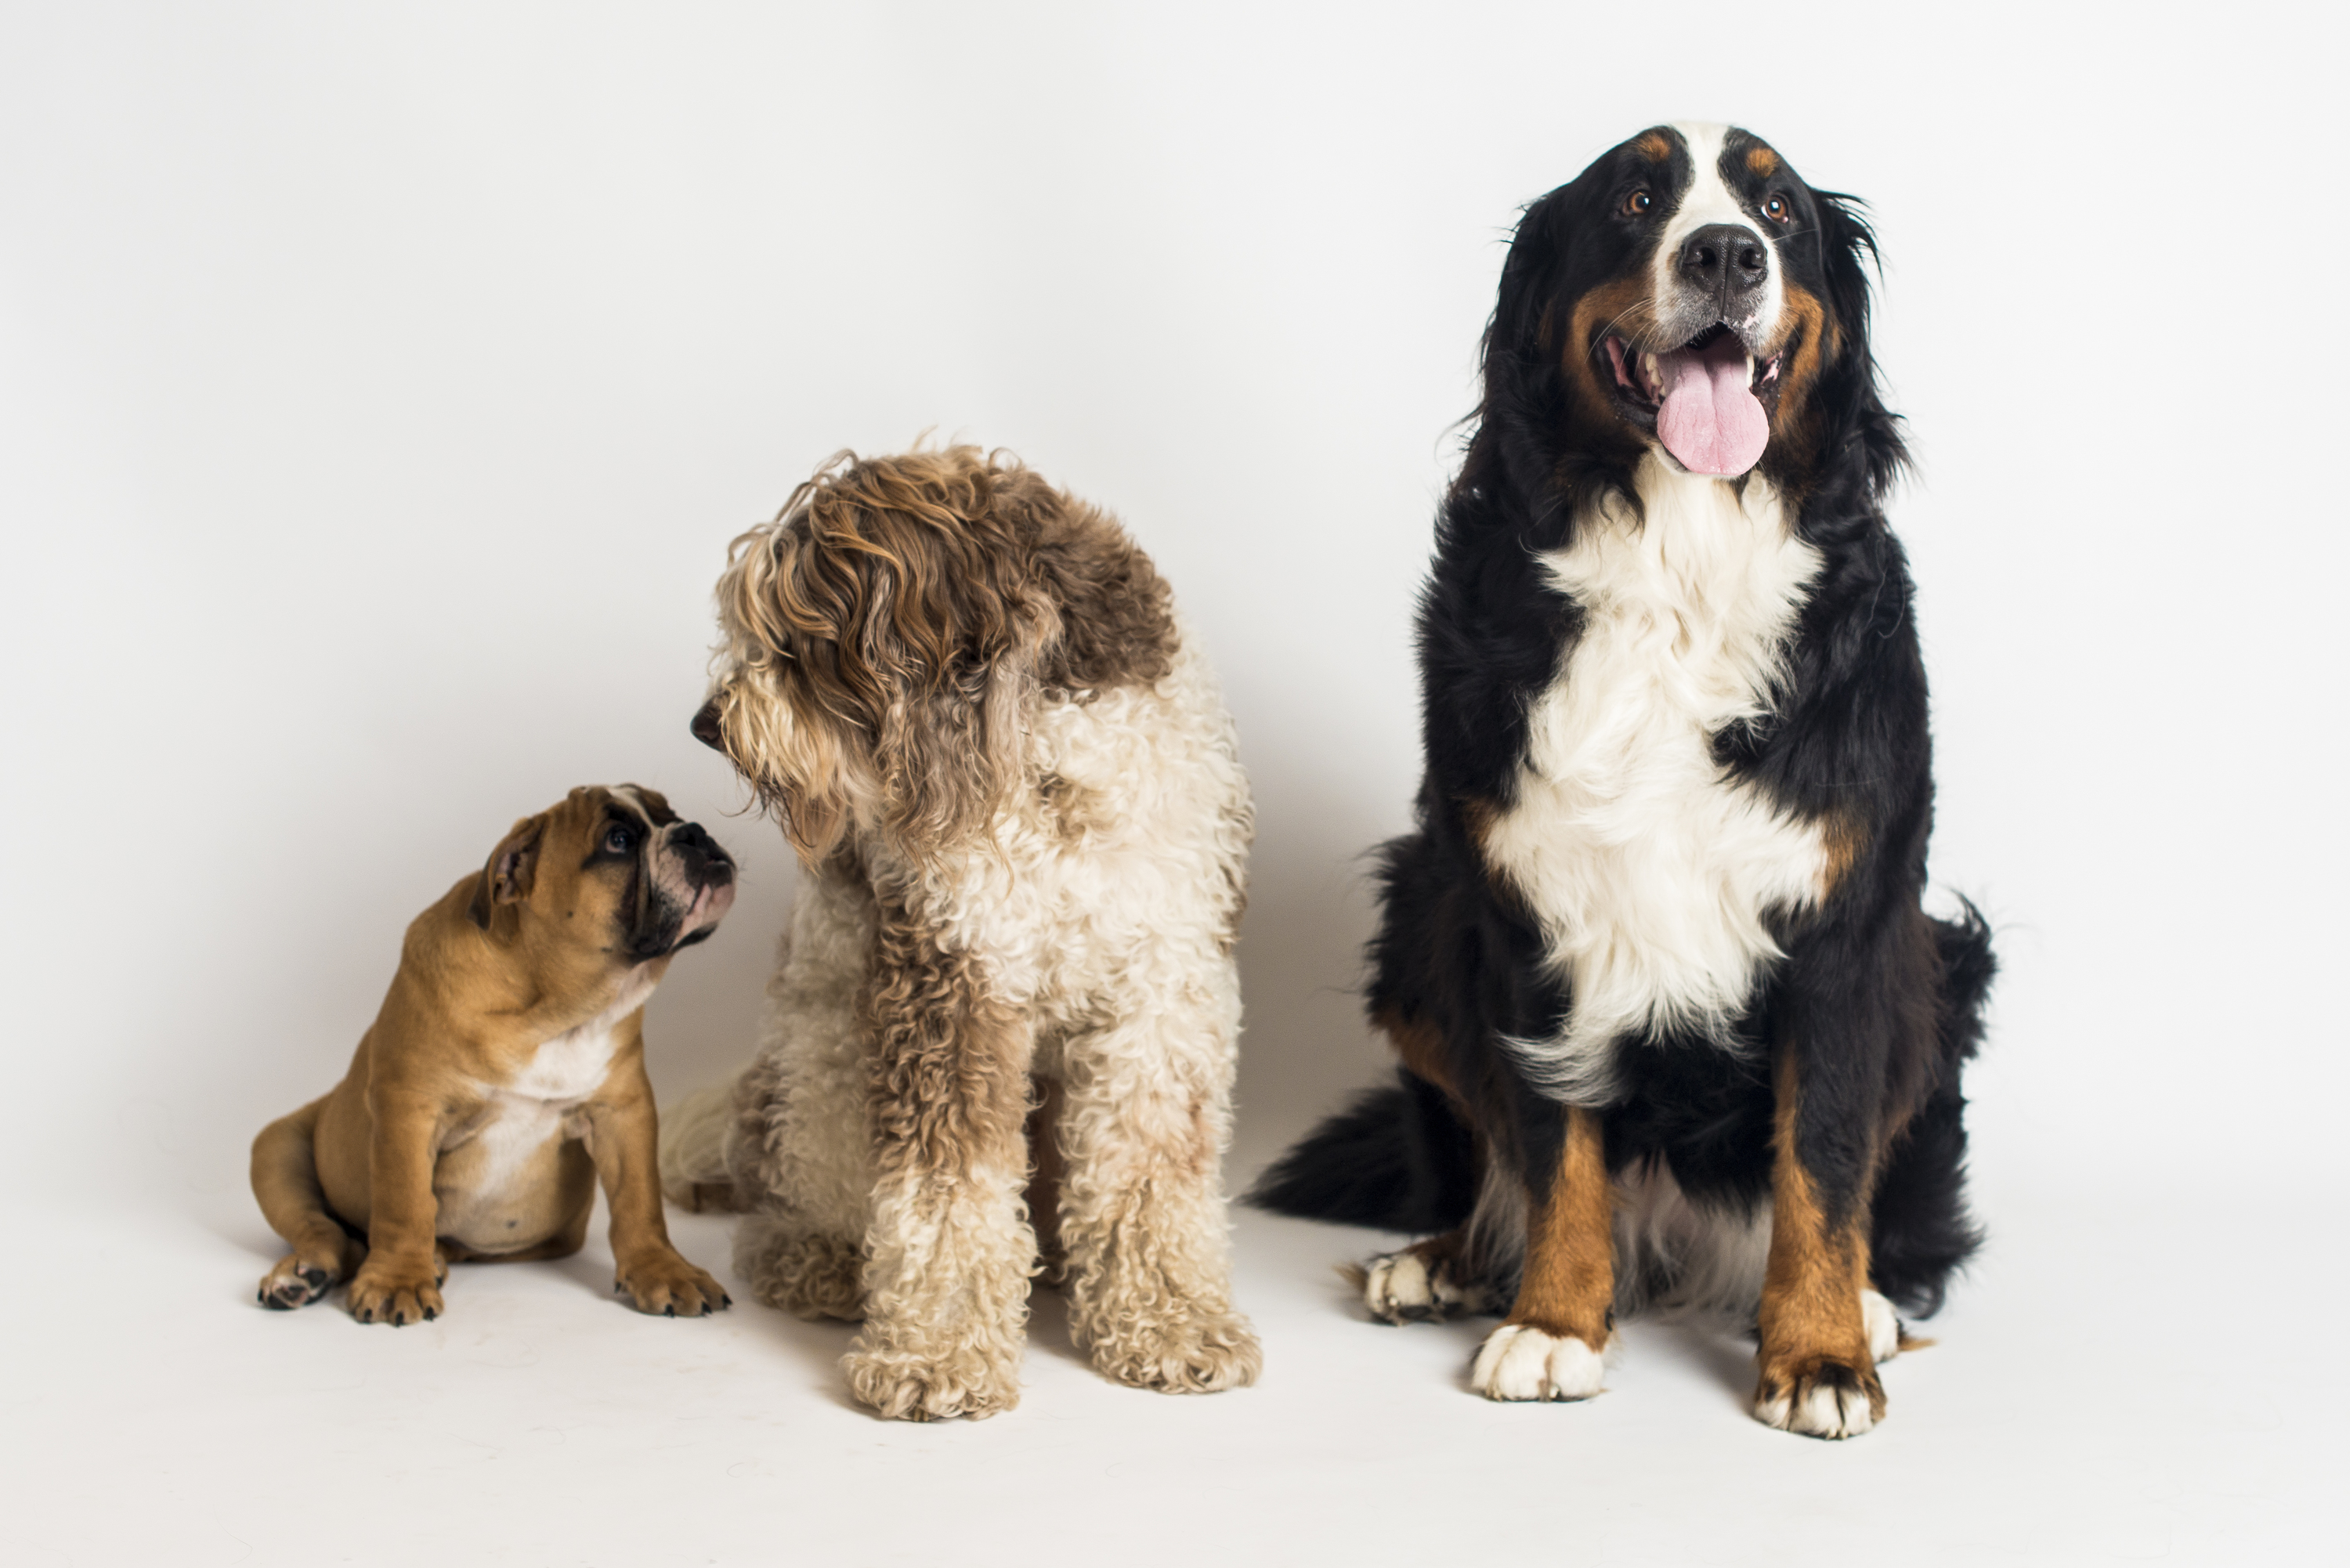 Three dogs standing and sniffing each other.